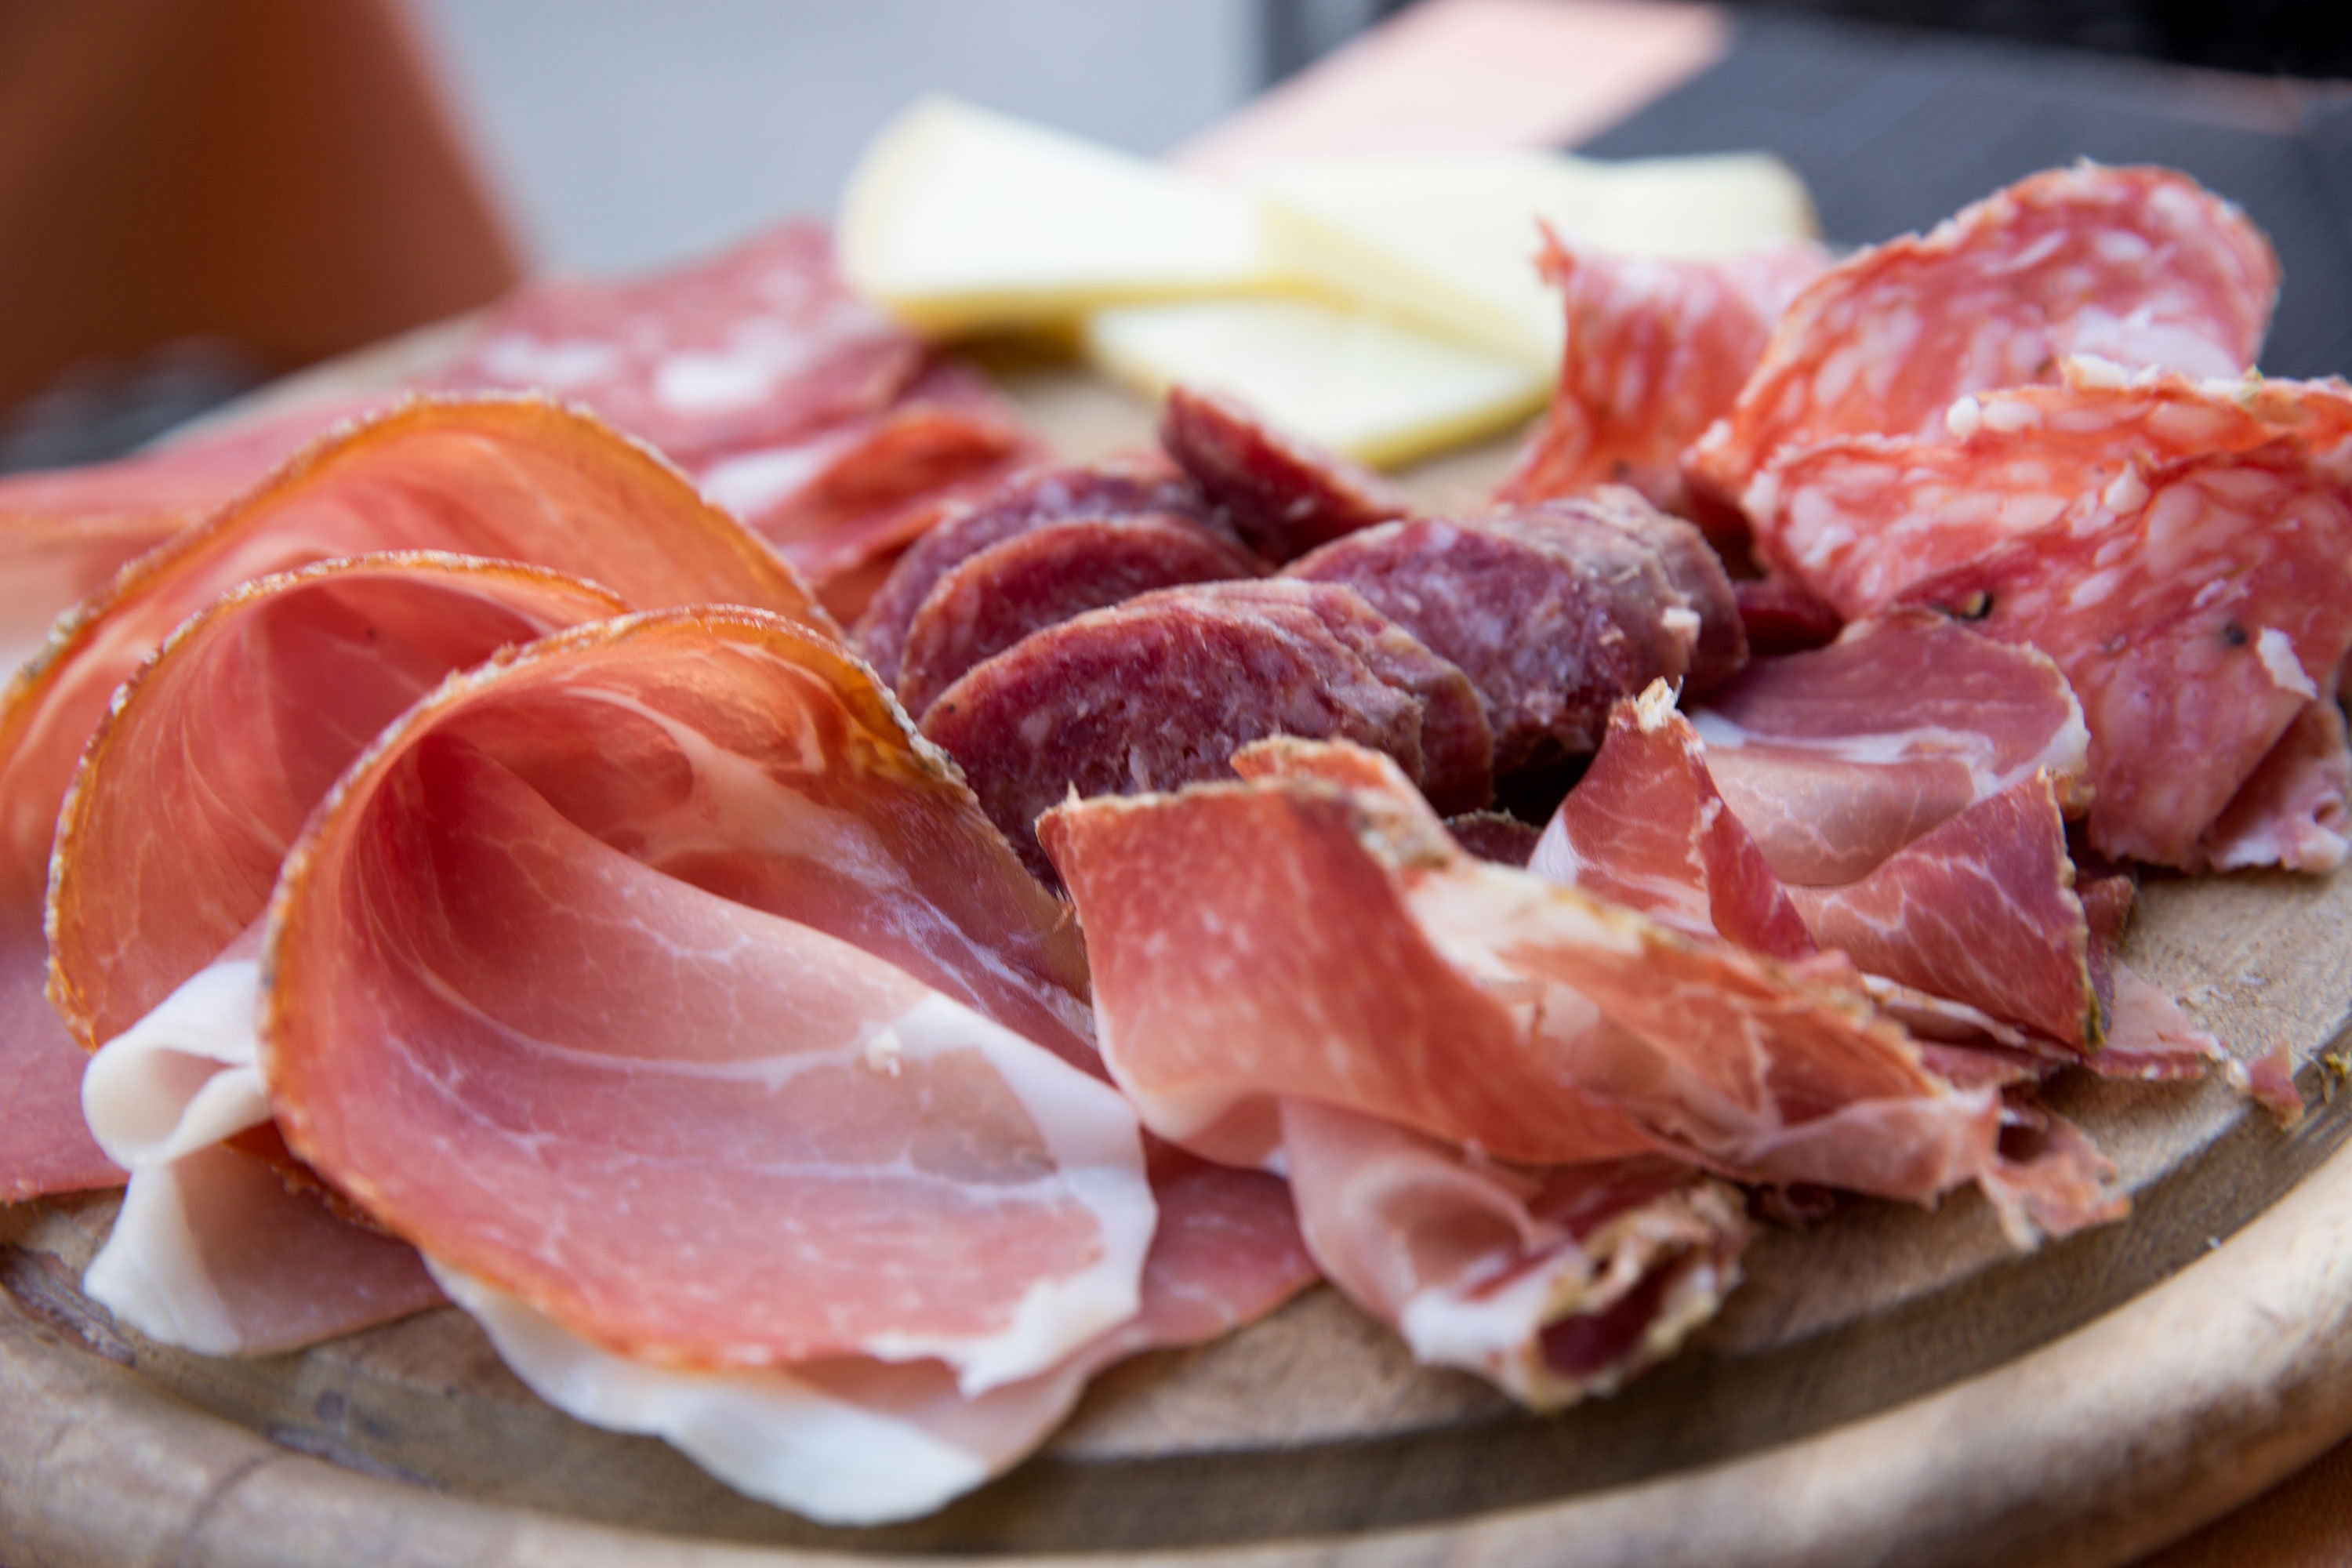 CDC warns of multi-state Listeria outbreak linked to deli meats